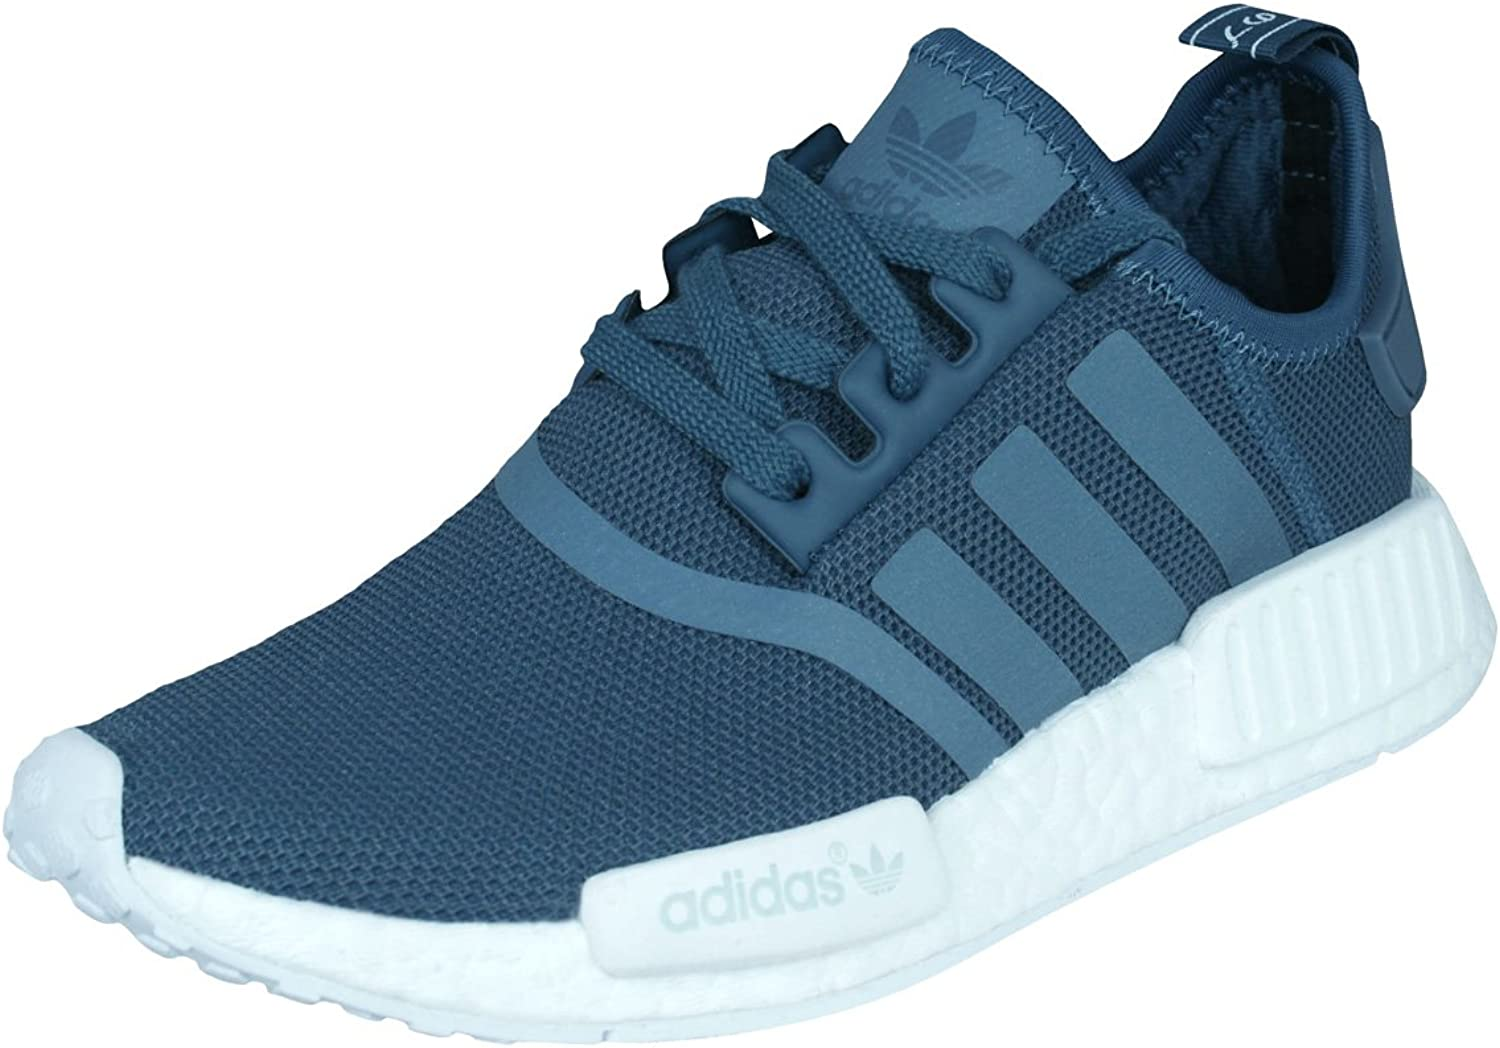 Adidas NMD_R1 Womens Running Sneakers shoes